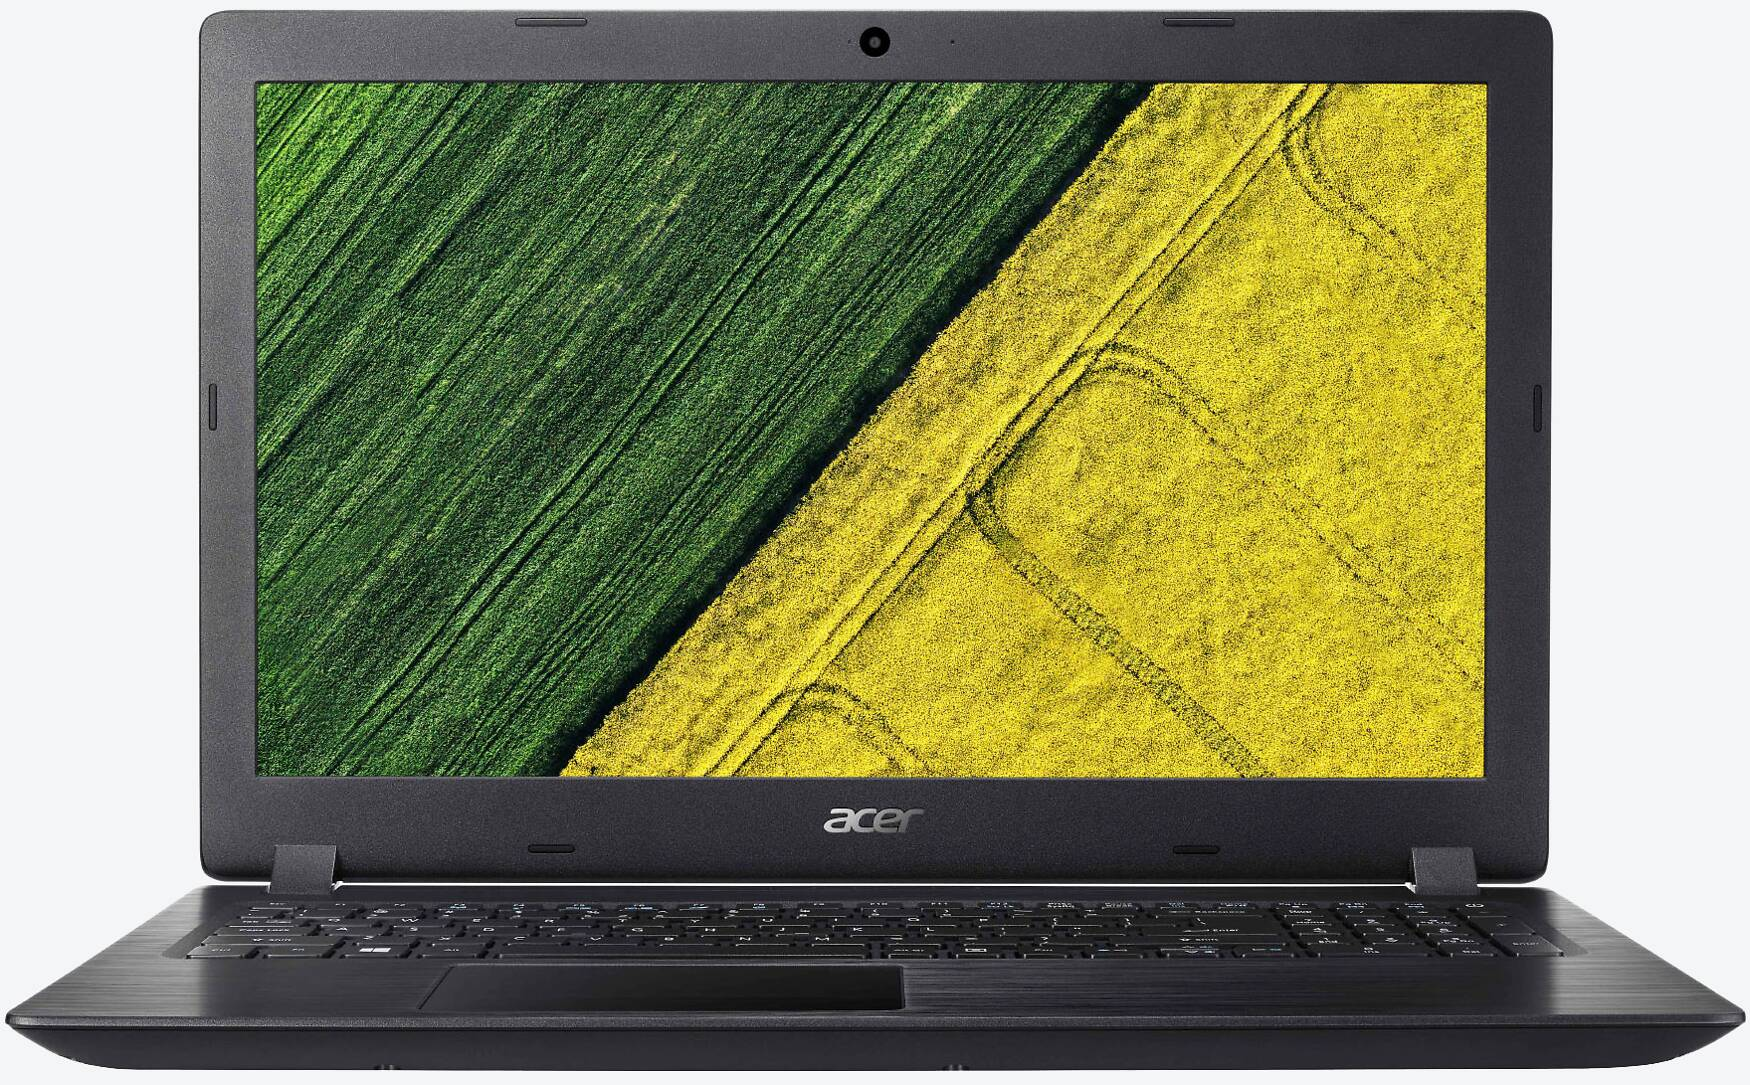 Acer Aspire 3 A317-51-36PS